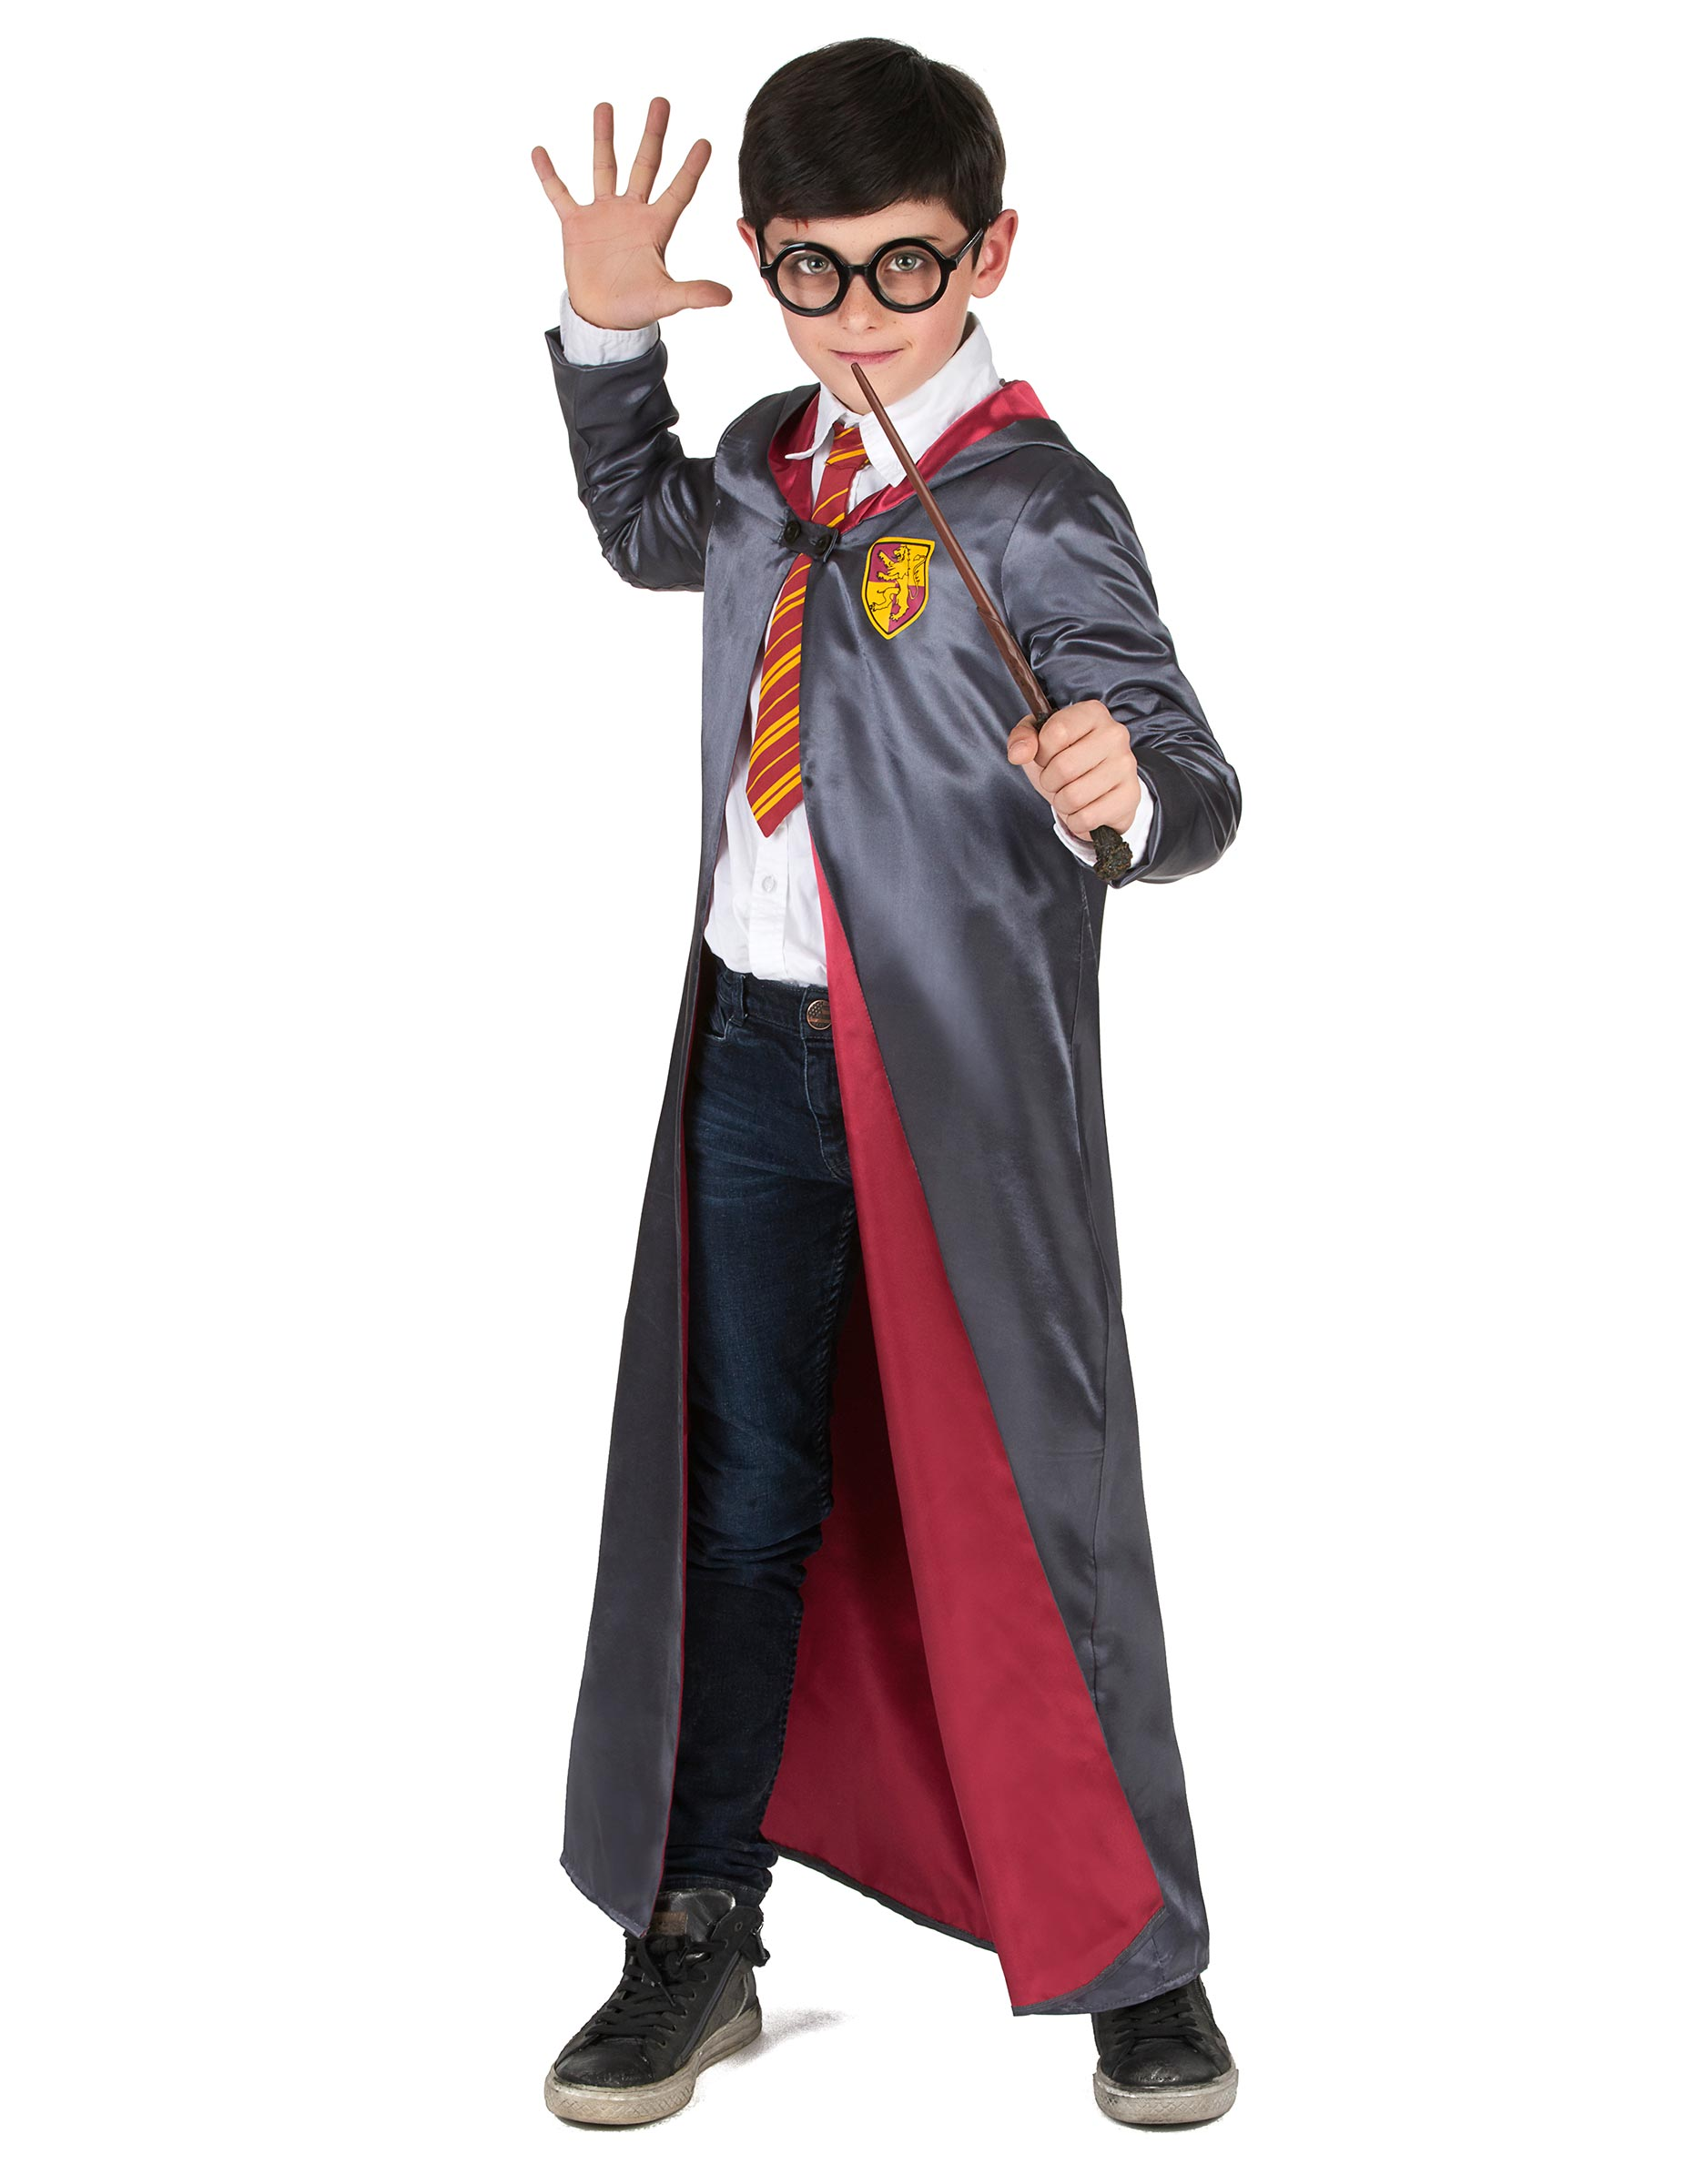 Wizard student costume for boys